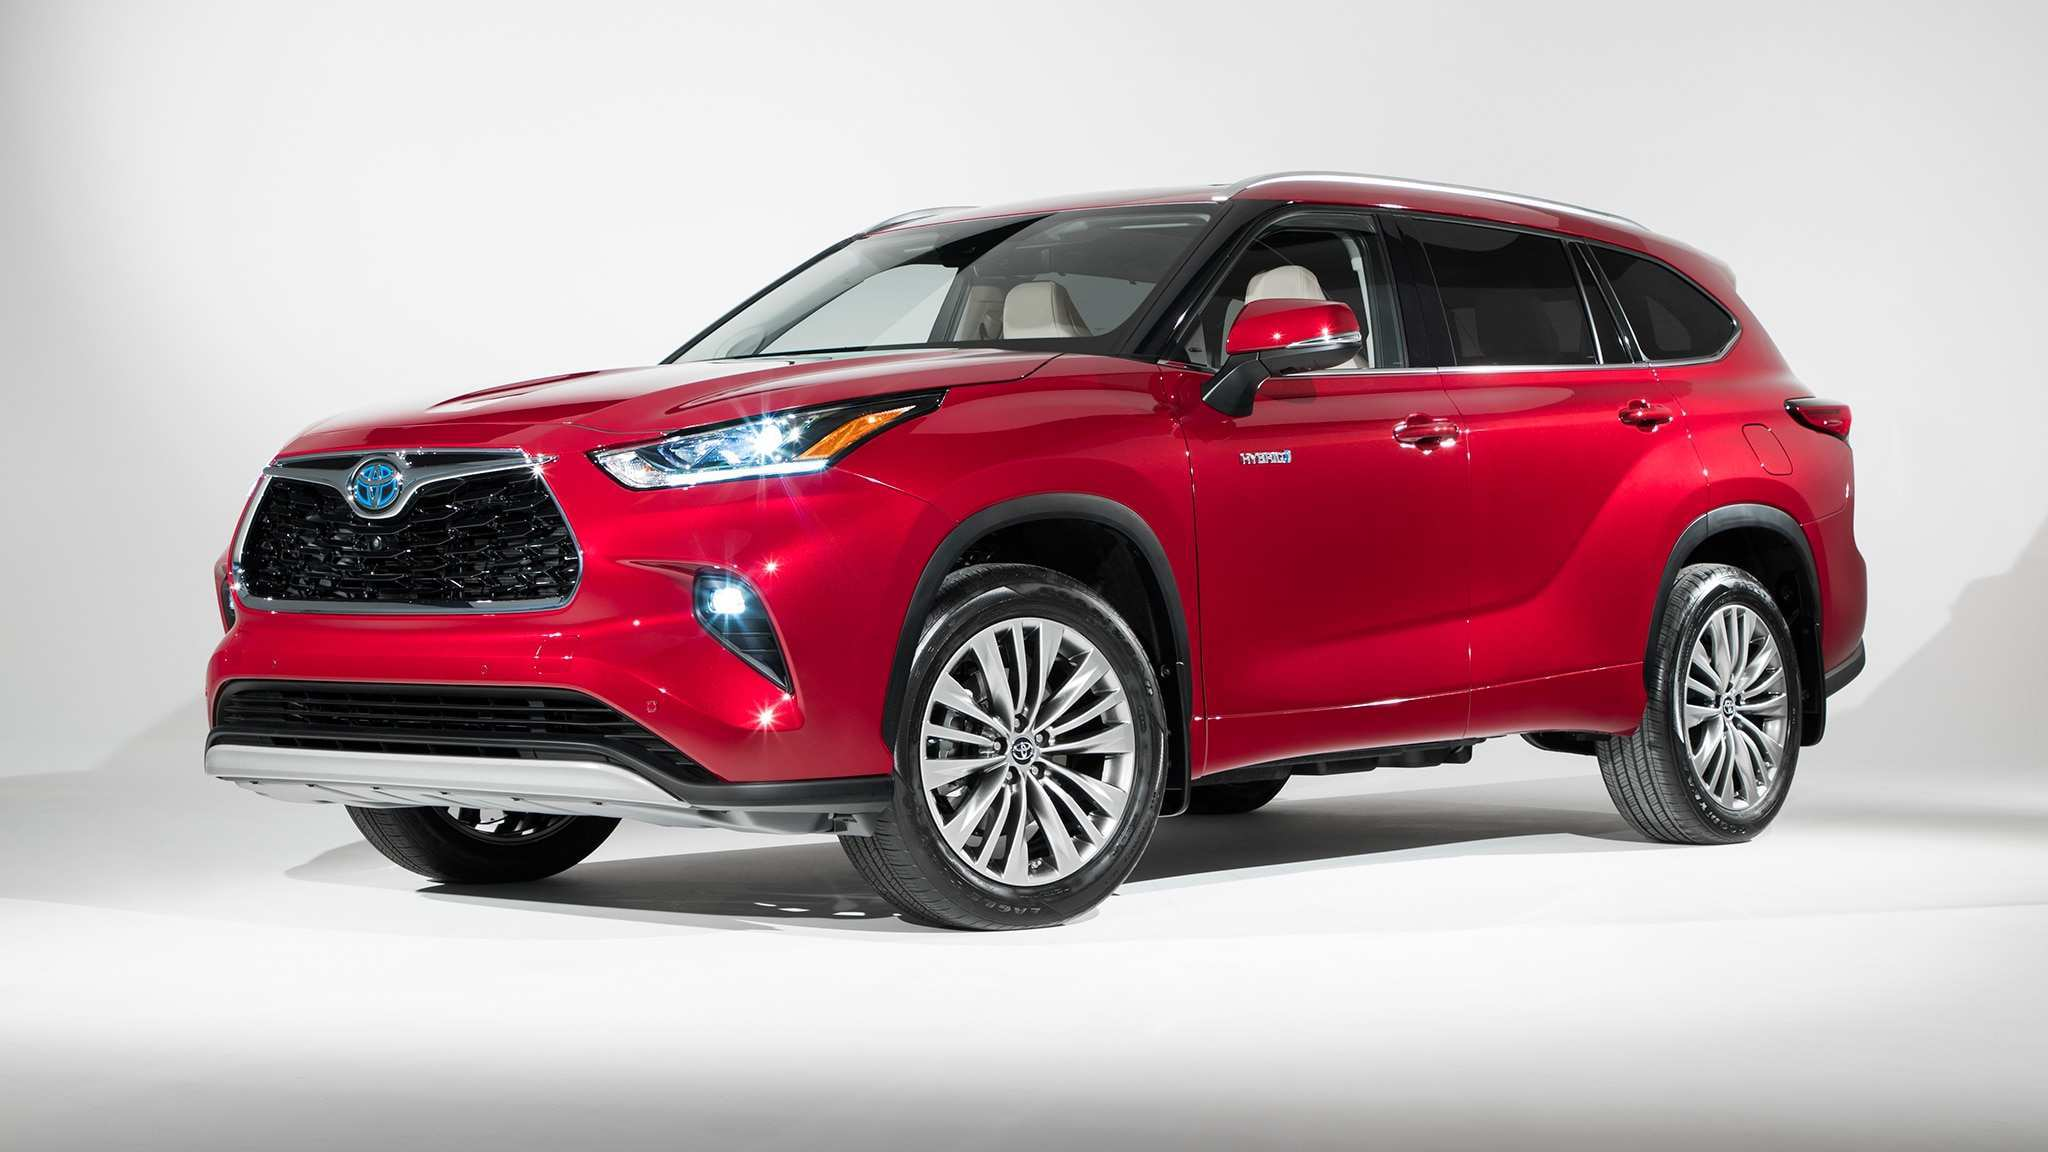 85 All New Toyota Kluger 2020 Model Price And Review